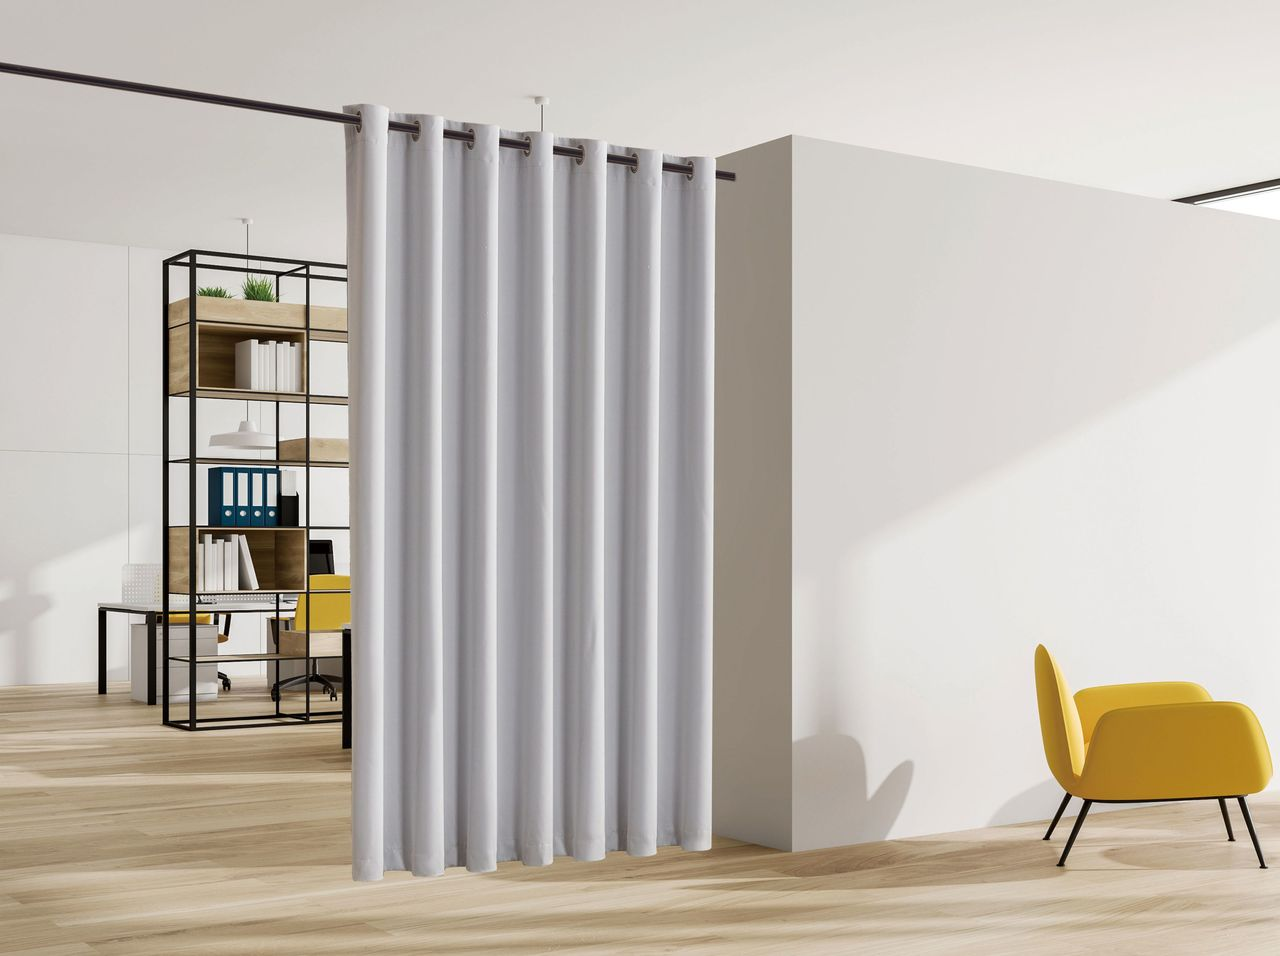 legacy decor blackout curtain with grommet top room divider 48 wide x 84 tall stone color walmart com